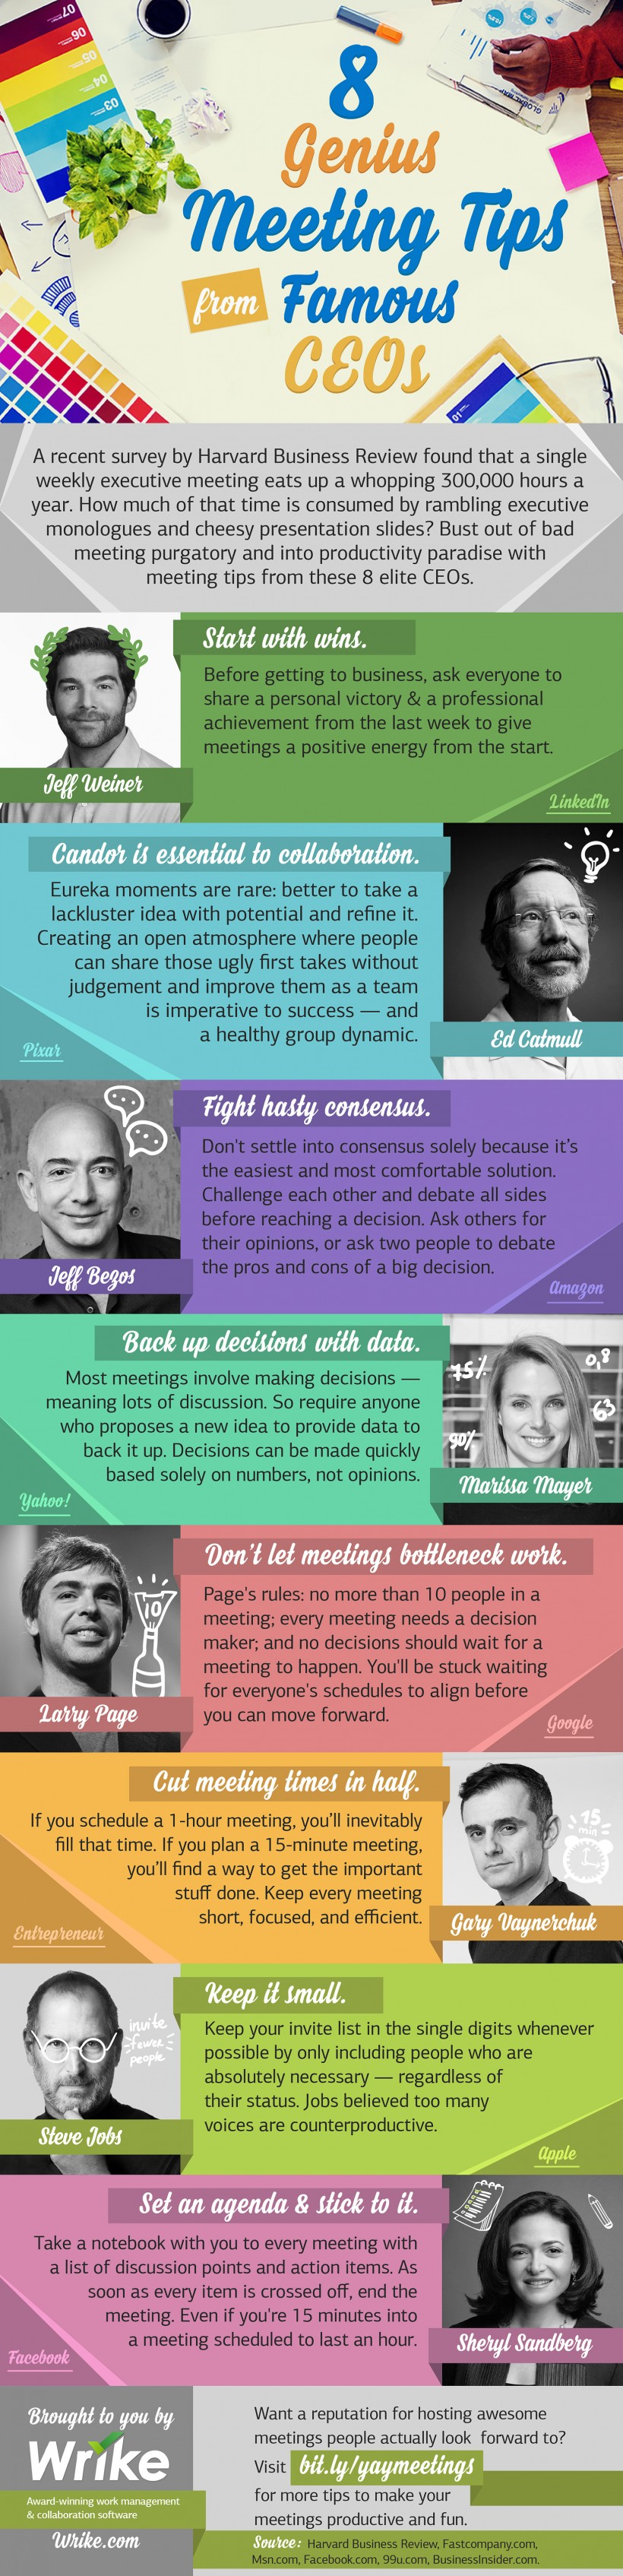 How Pixar, Google, and Facebook Fight Bad Meetings (Infographic)